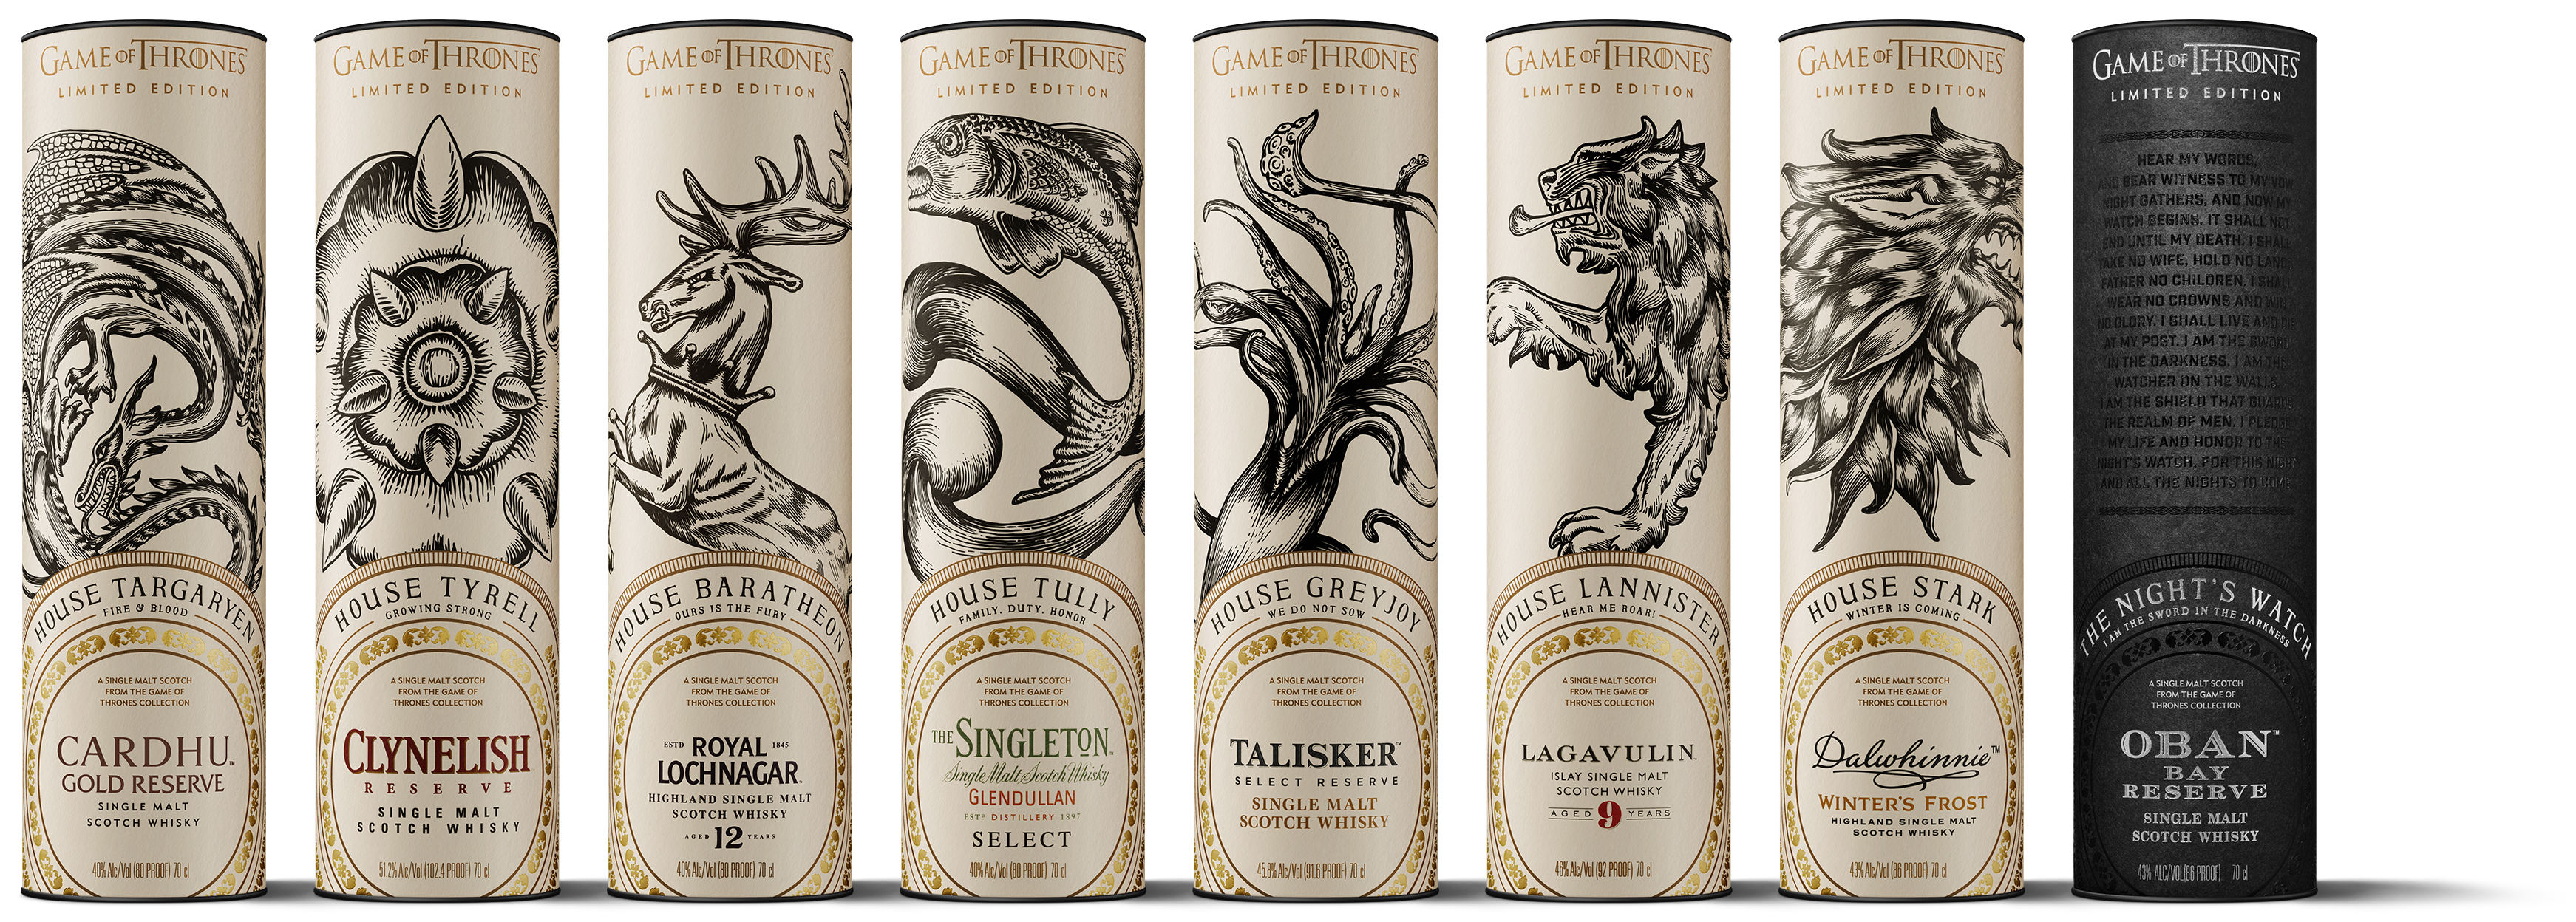 The Best Present you Could Ever buy a Game of Thrones Whisky Fan: Single Malt Scotch Whisky Collection - Packaging